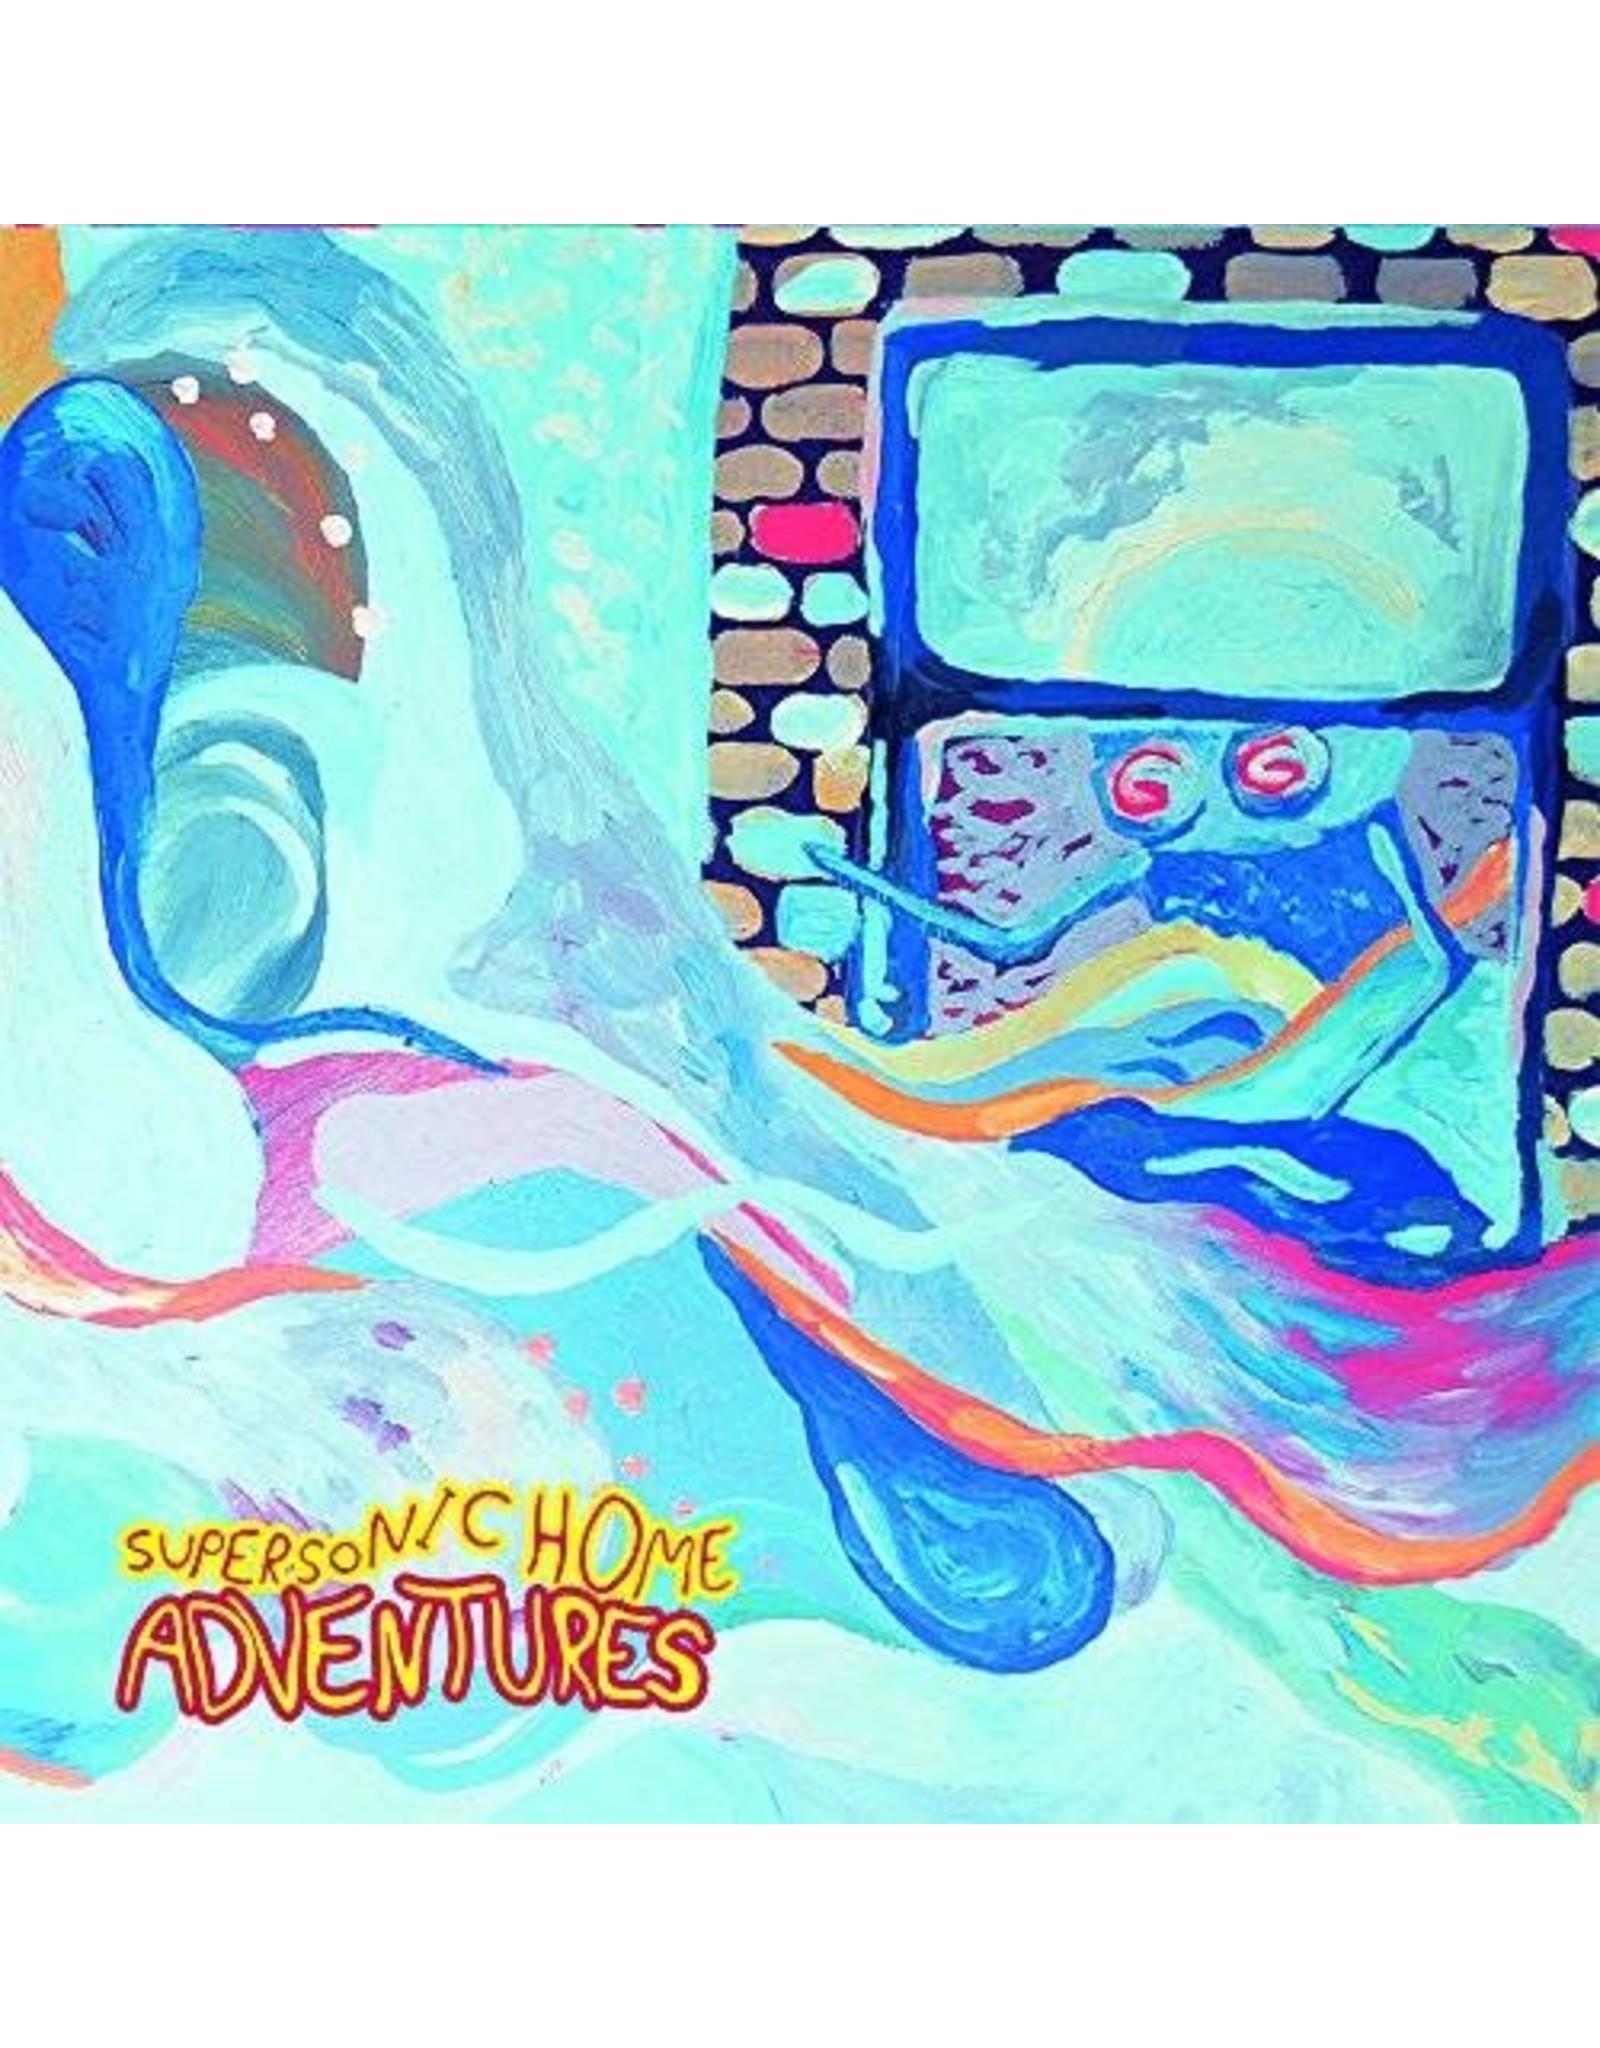 Adventures - Supersonic Home CD